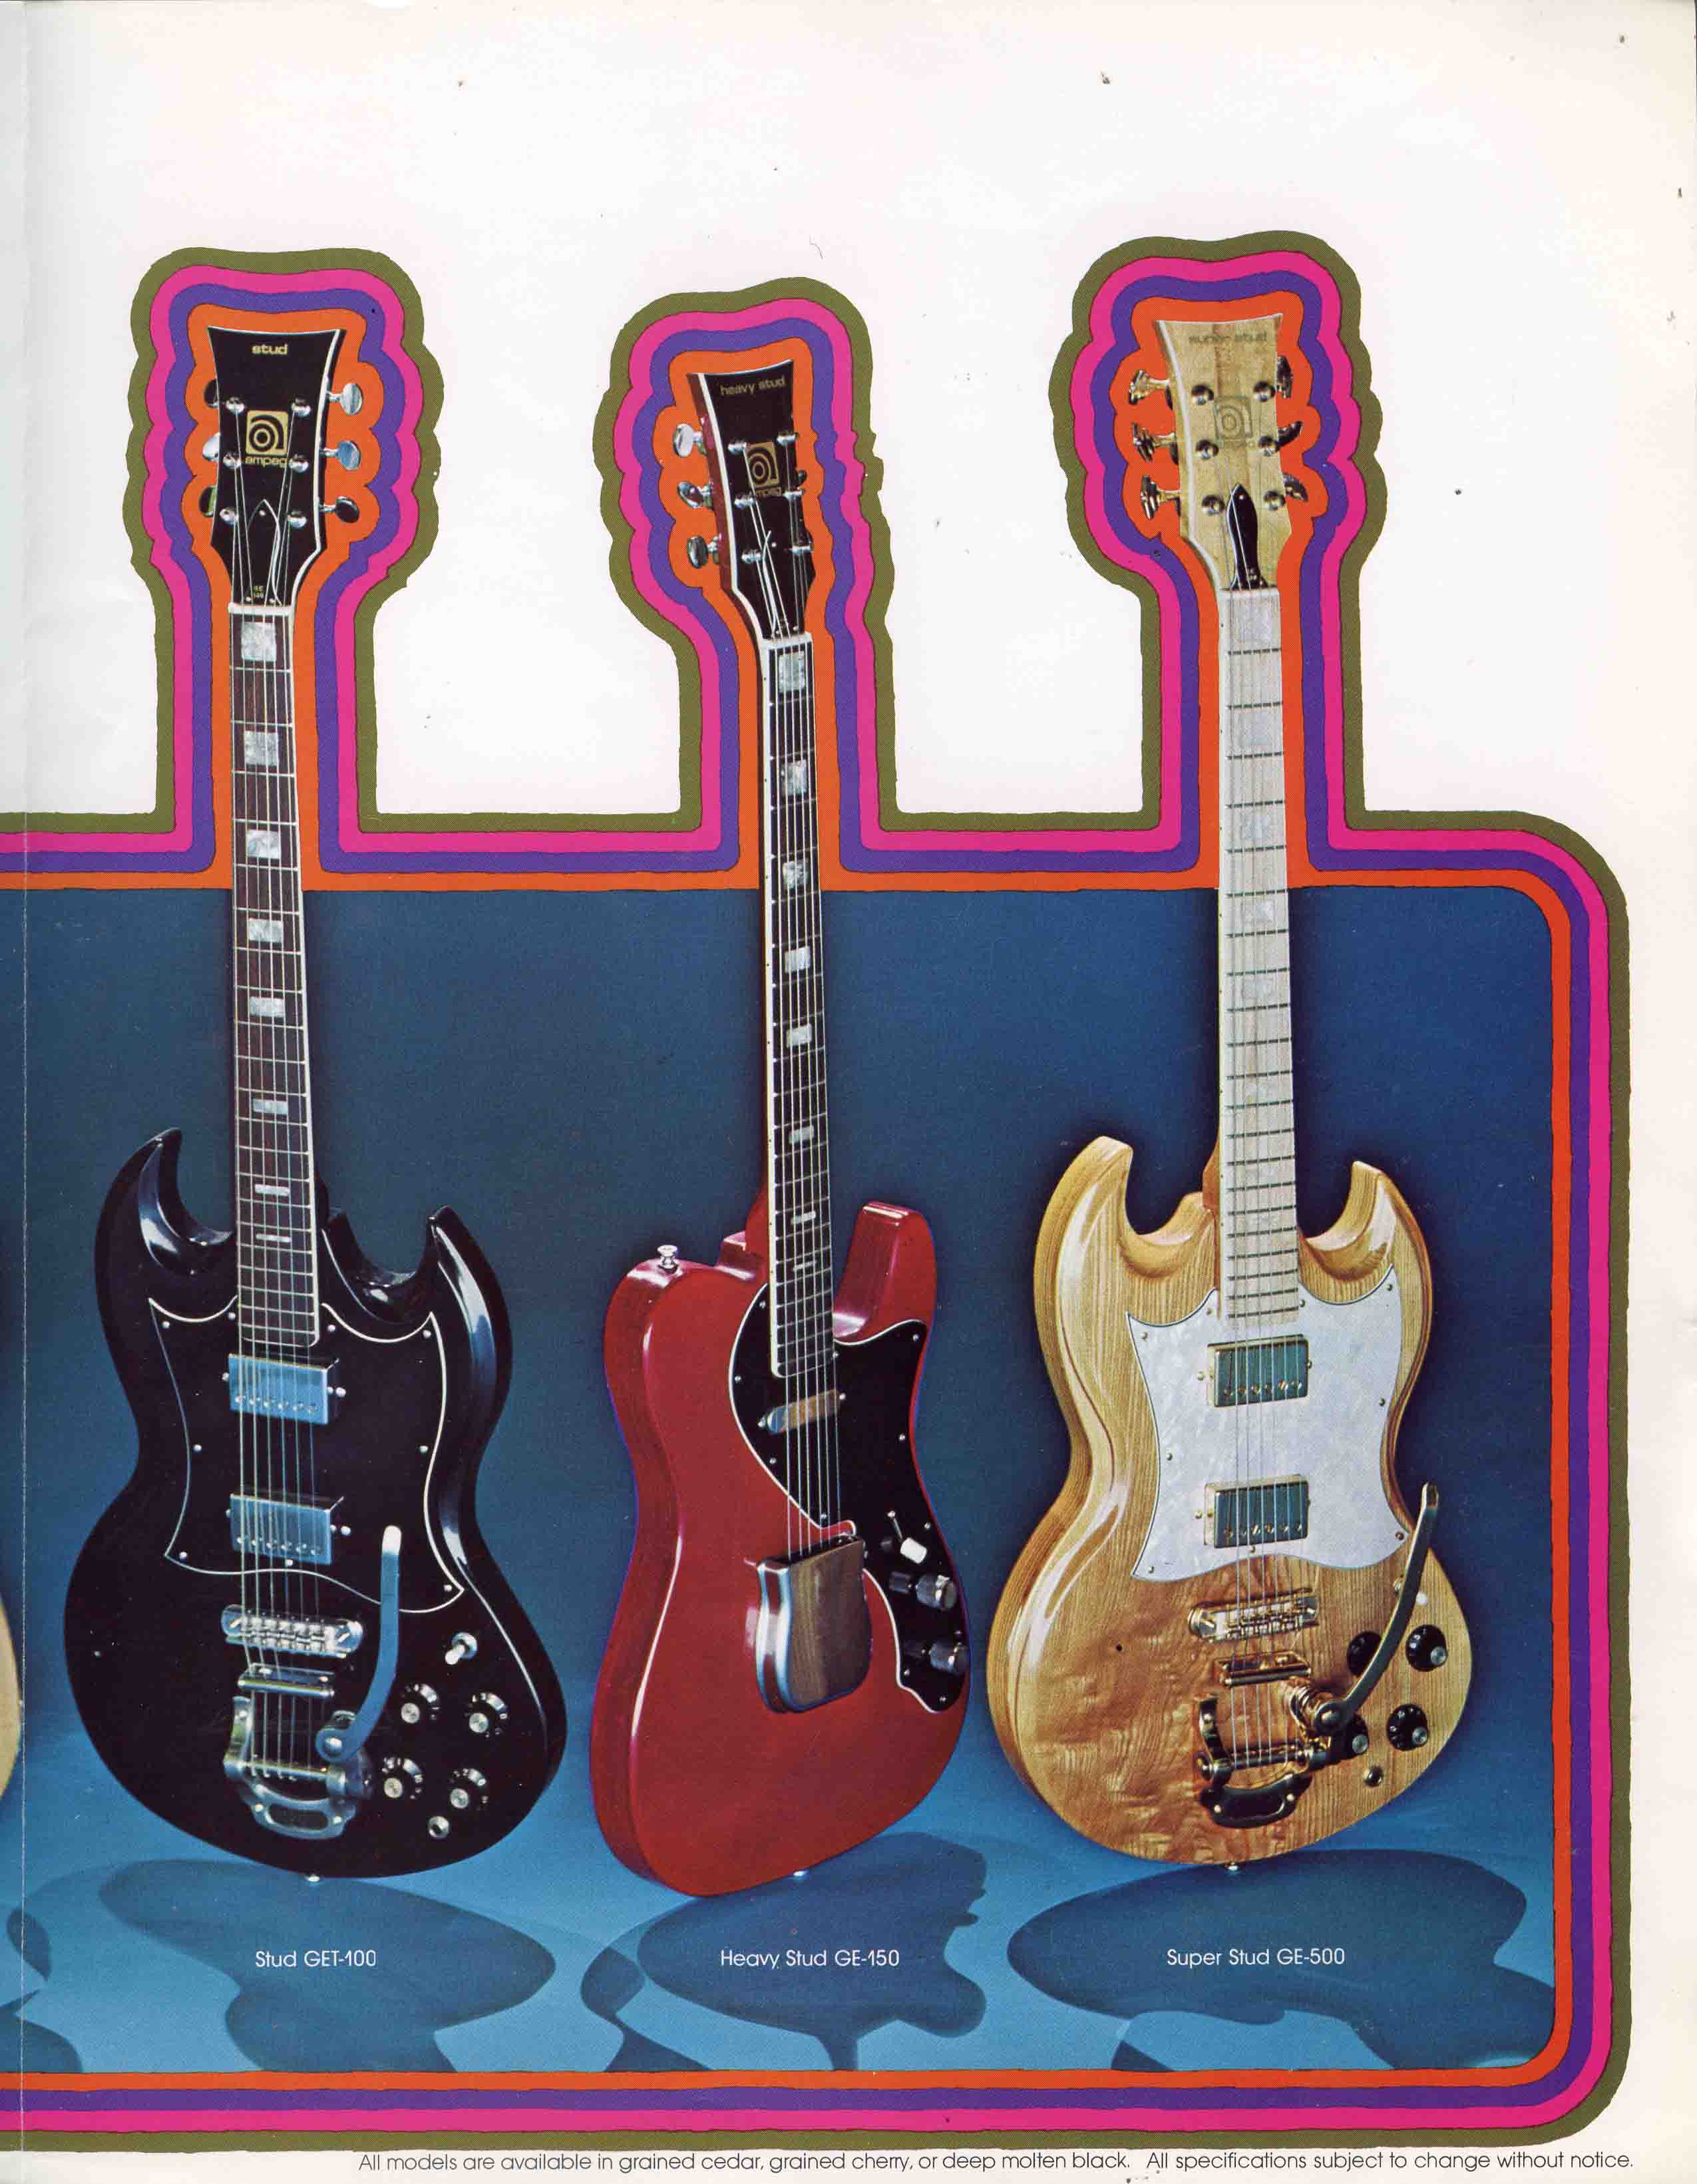 1973 Ampeg Guitars Ad (Stud Series)